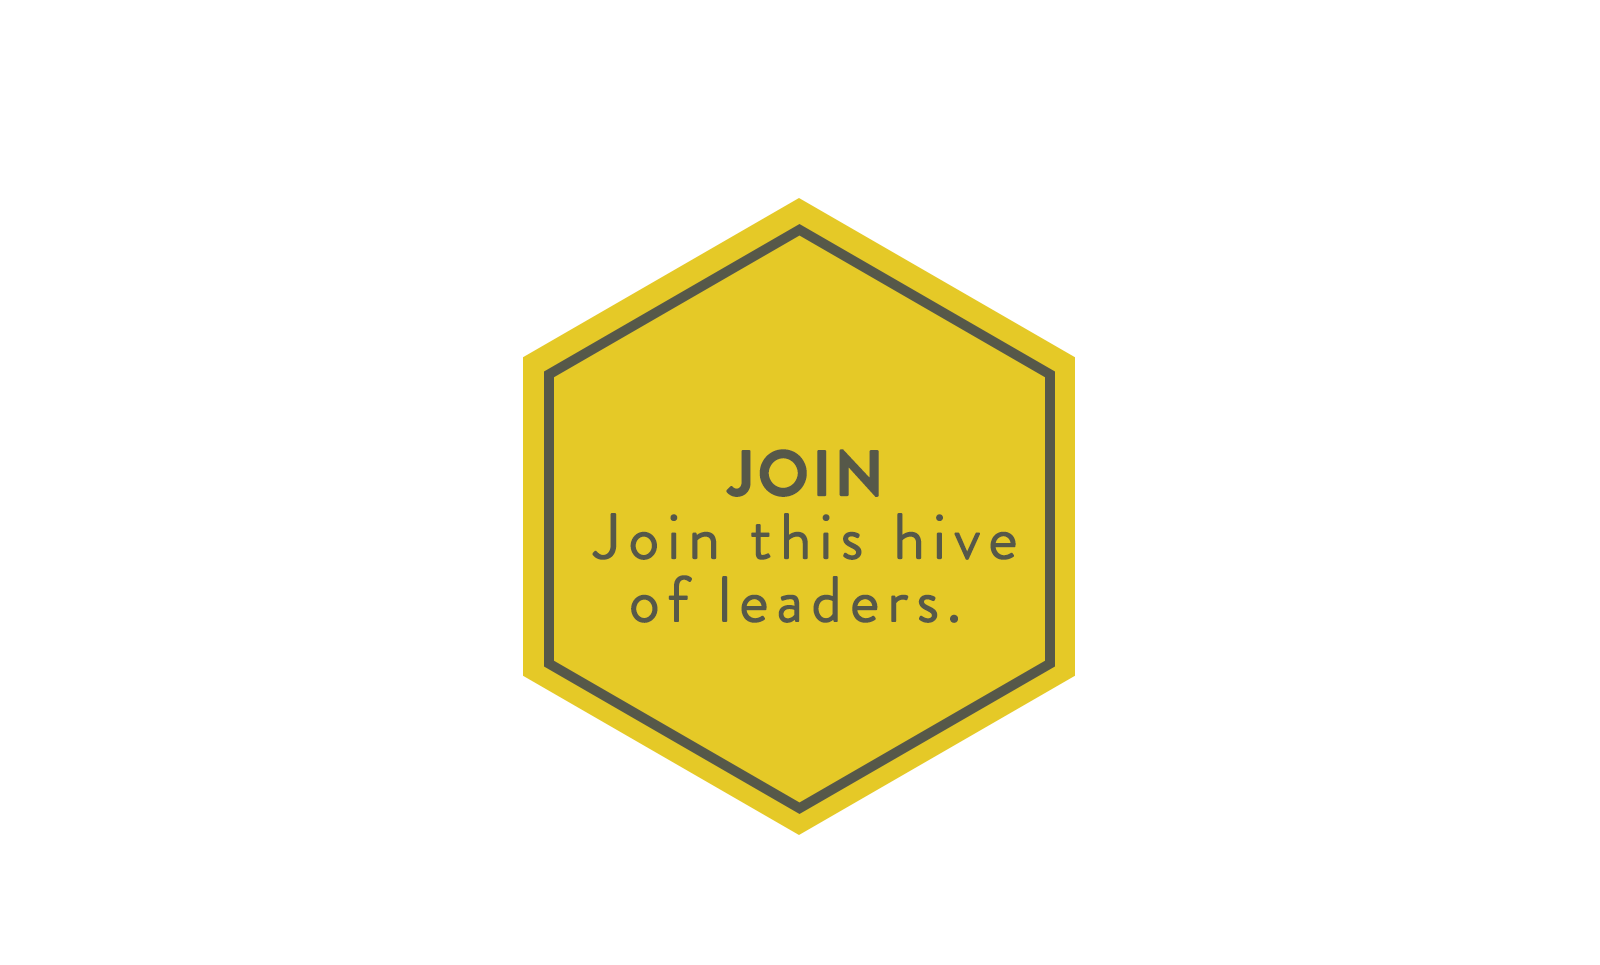 join-hive